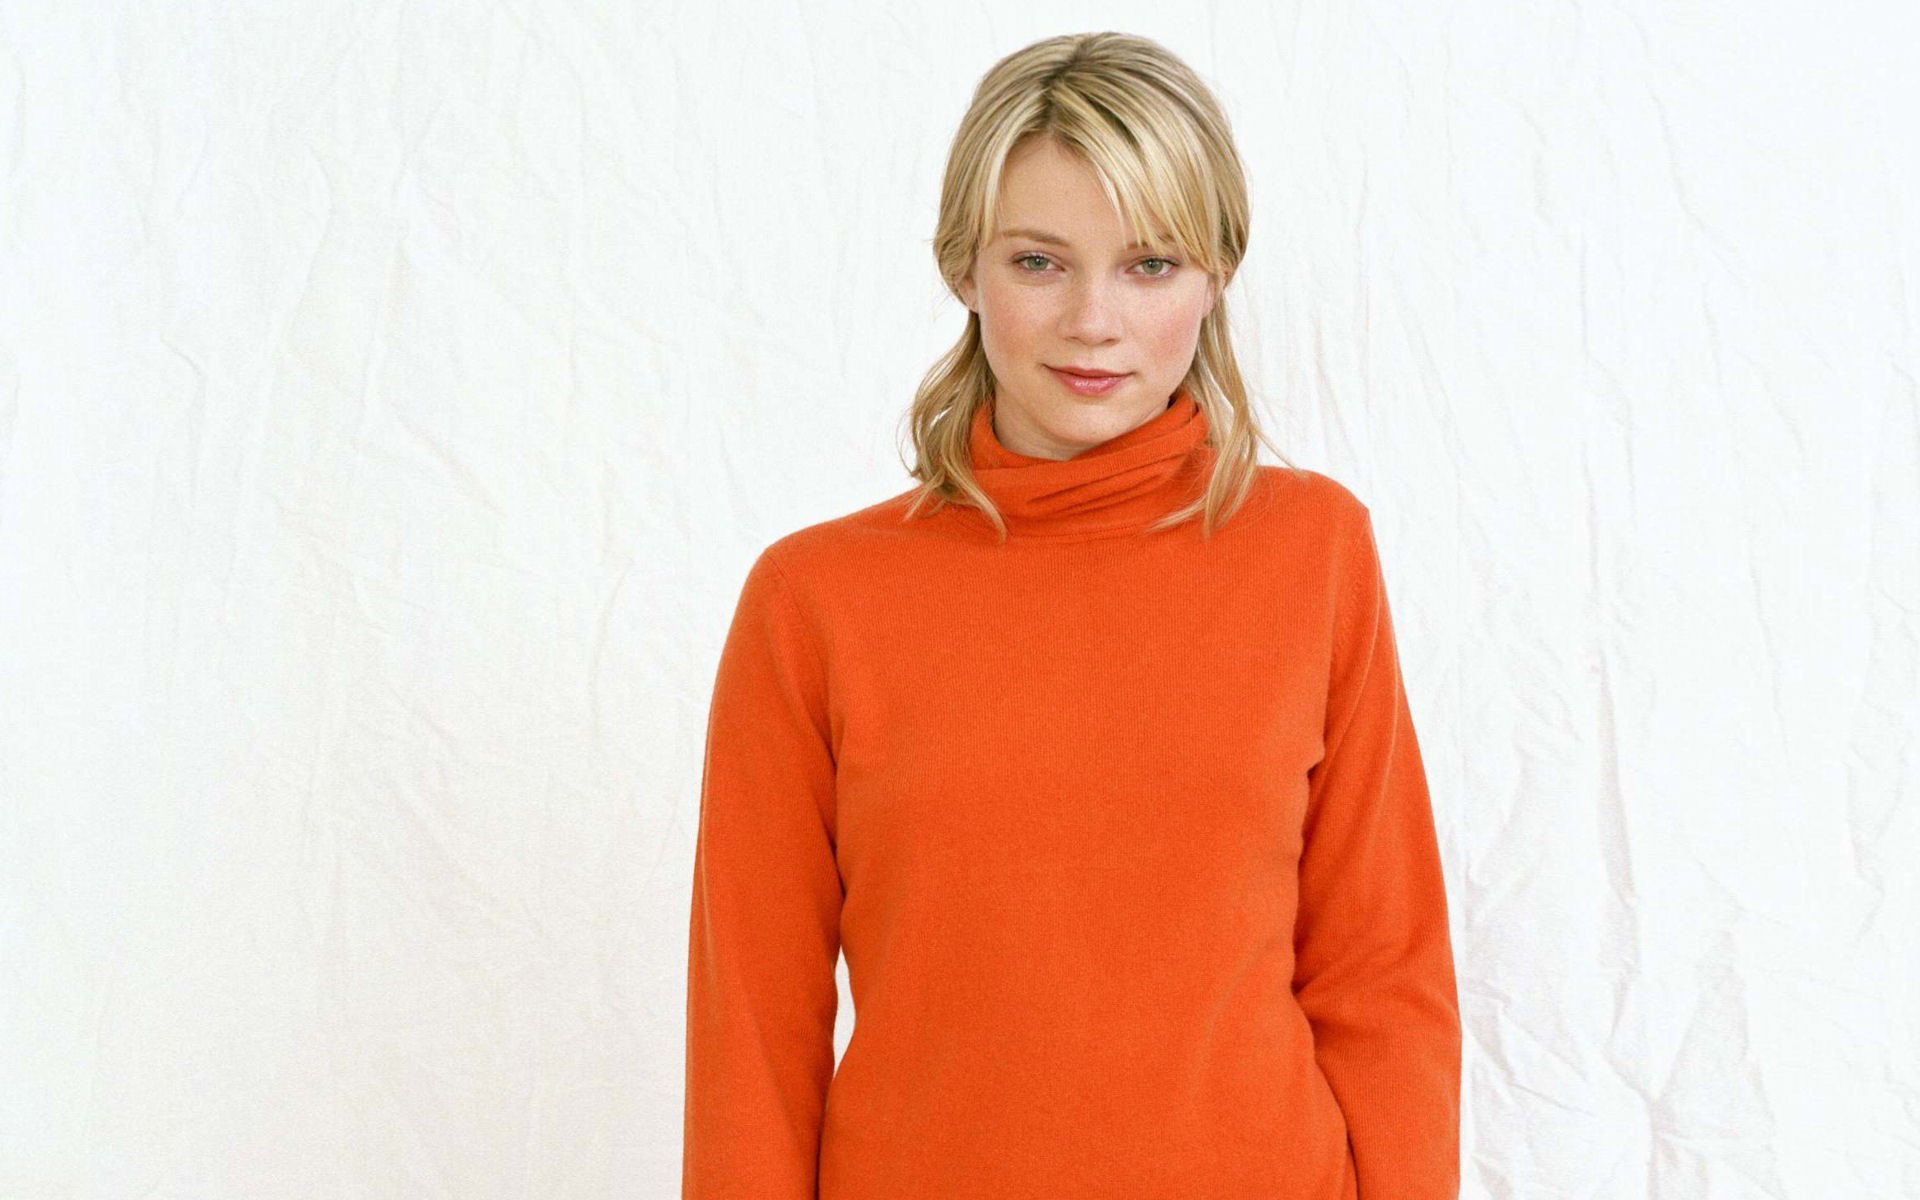 1920x1200 - Amy Smart Wallpapers 13